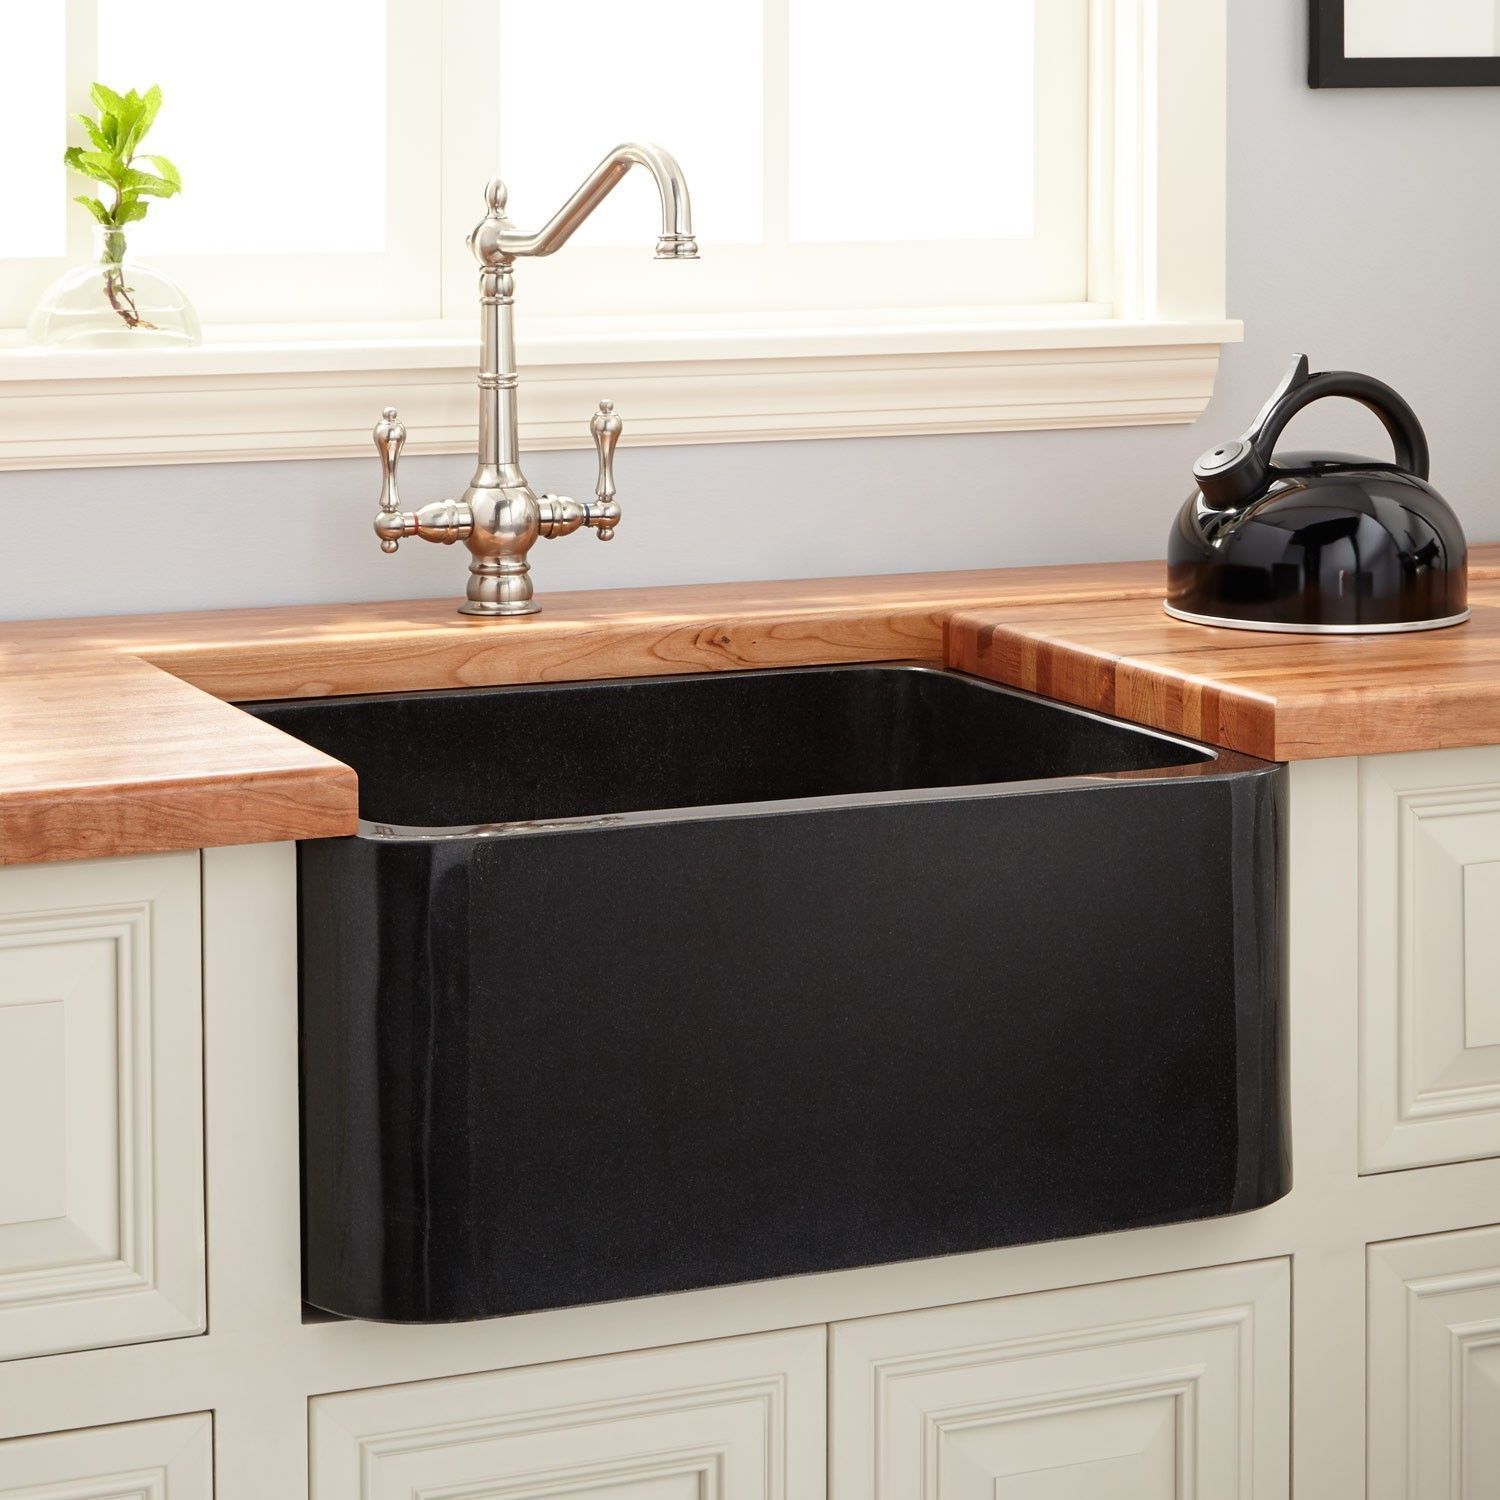 Kitchen Hardware Fixtures and Decor | Signature Hardware 24 Polished Granite Farmhouse Sink  Black #Decor #Fixtures #Hardware #Kitchen #Signature ...s of transactions price is naturally an important issue. For black kitchen sinks the pricing would slightly vary from one manufacturer to another. O...of stains like the ones caused by your Kool-Aid juice and red wine. Plus enameled black sinks are also relatively very easy to wipe clean because of #diy.farmhouseinteriors.club #farmhouse-sink-black